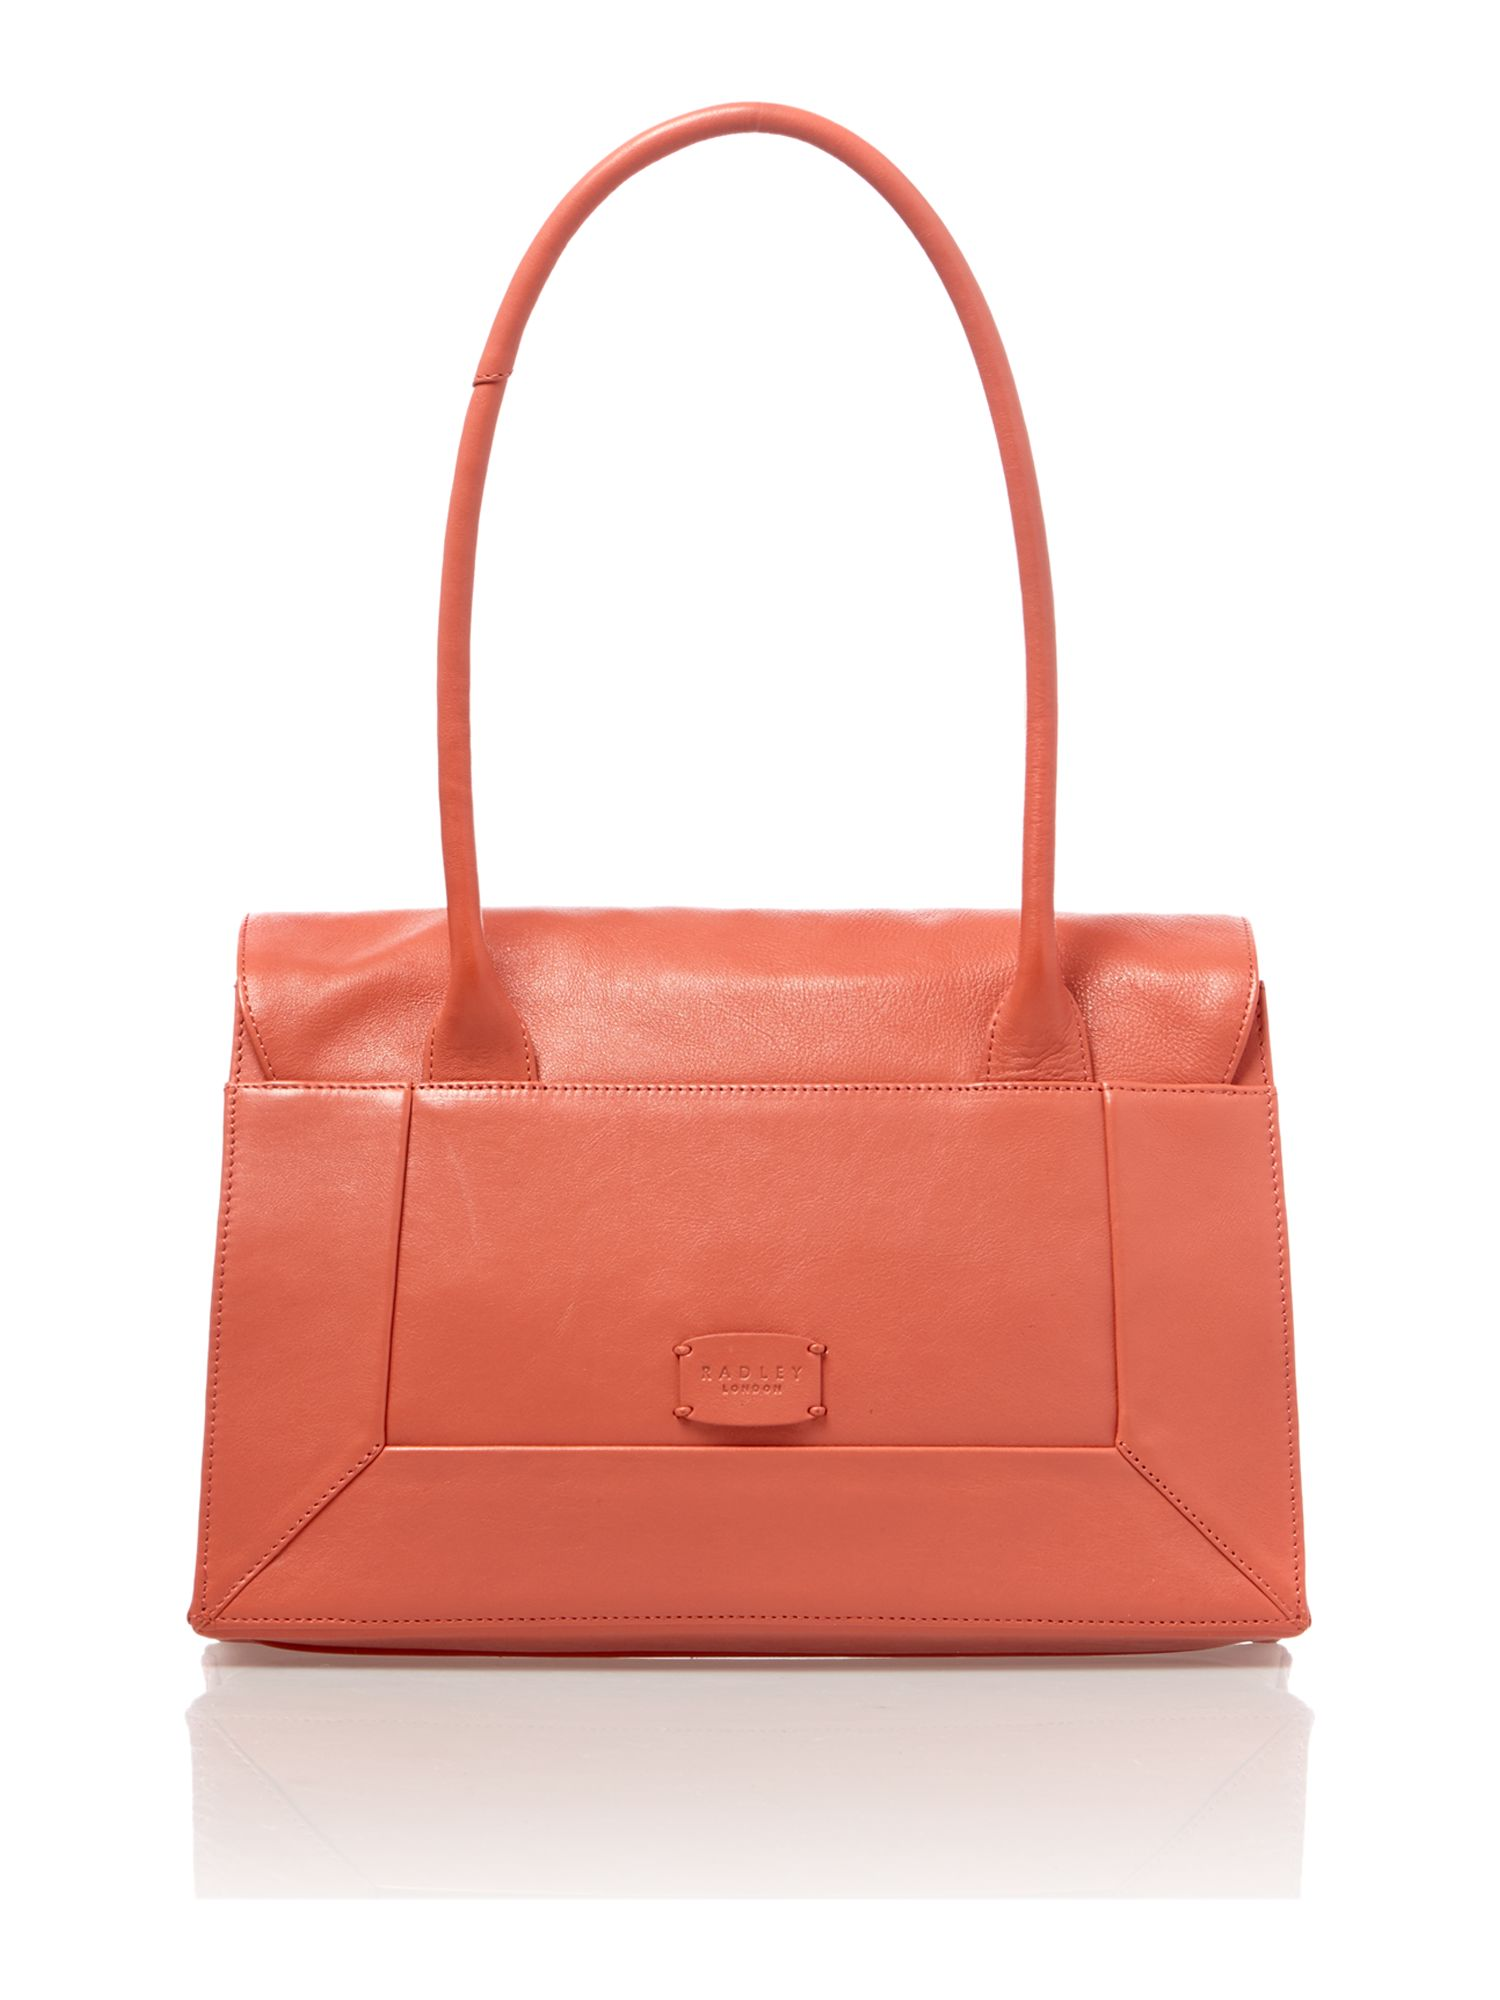 Border medium coral flapover tote leather bag